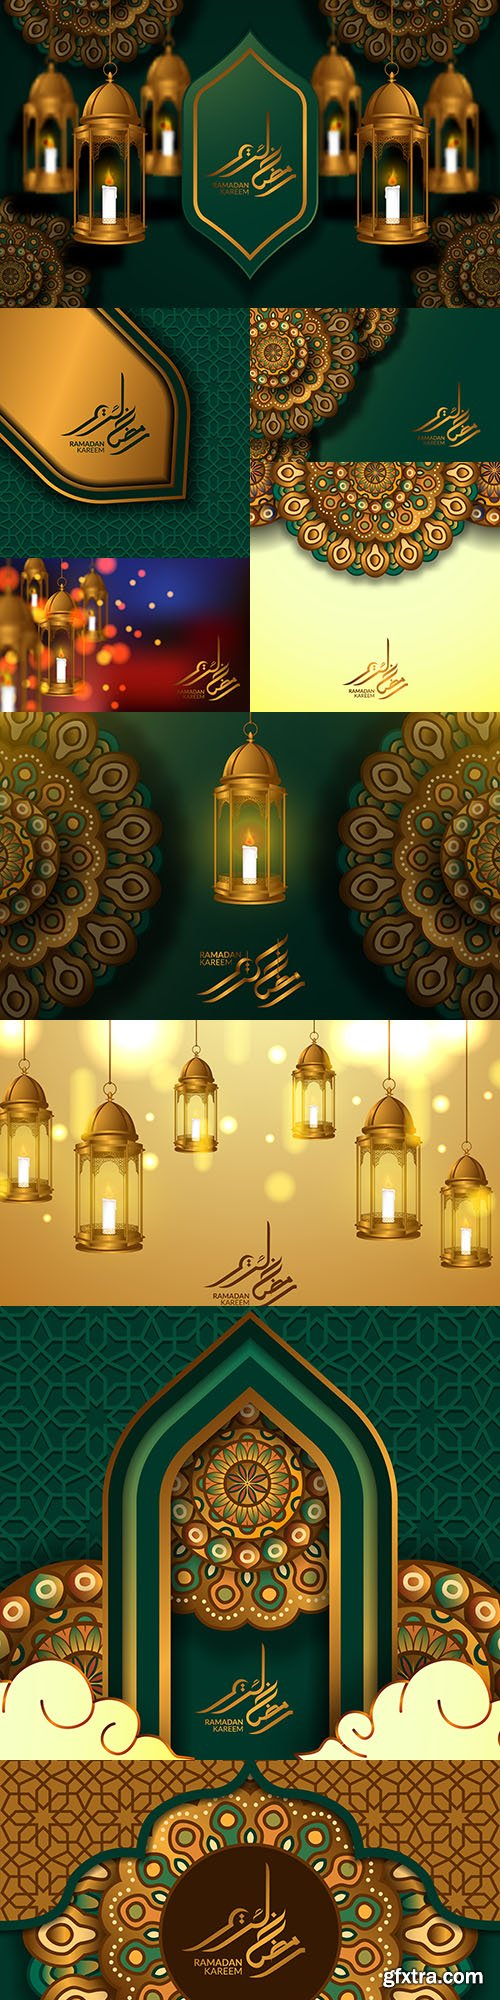 Ramadan Kareem Islamic postcard design template 14